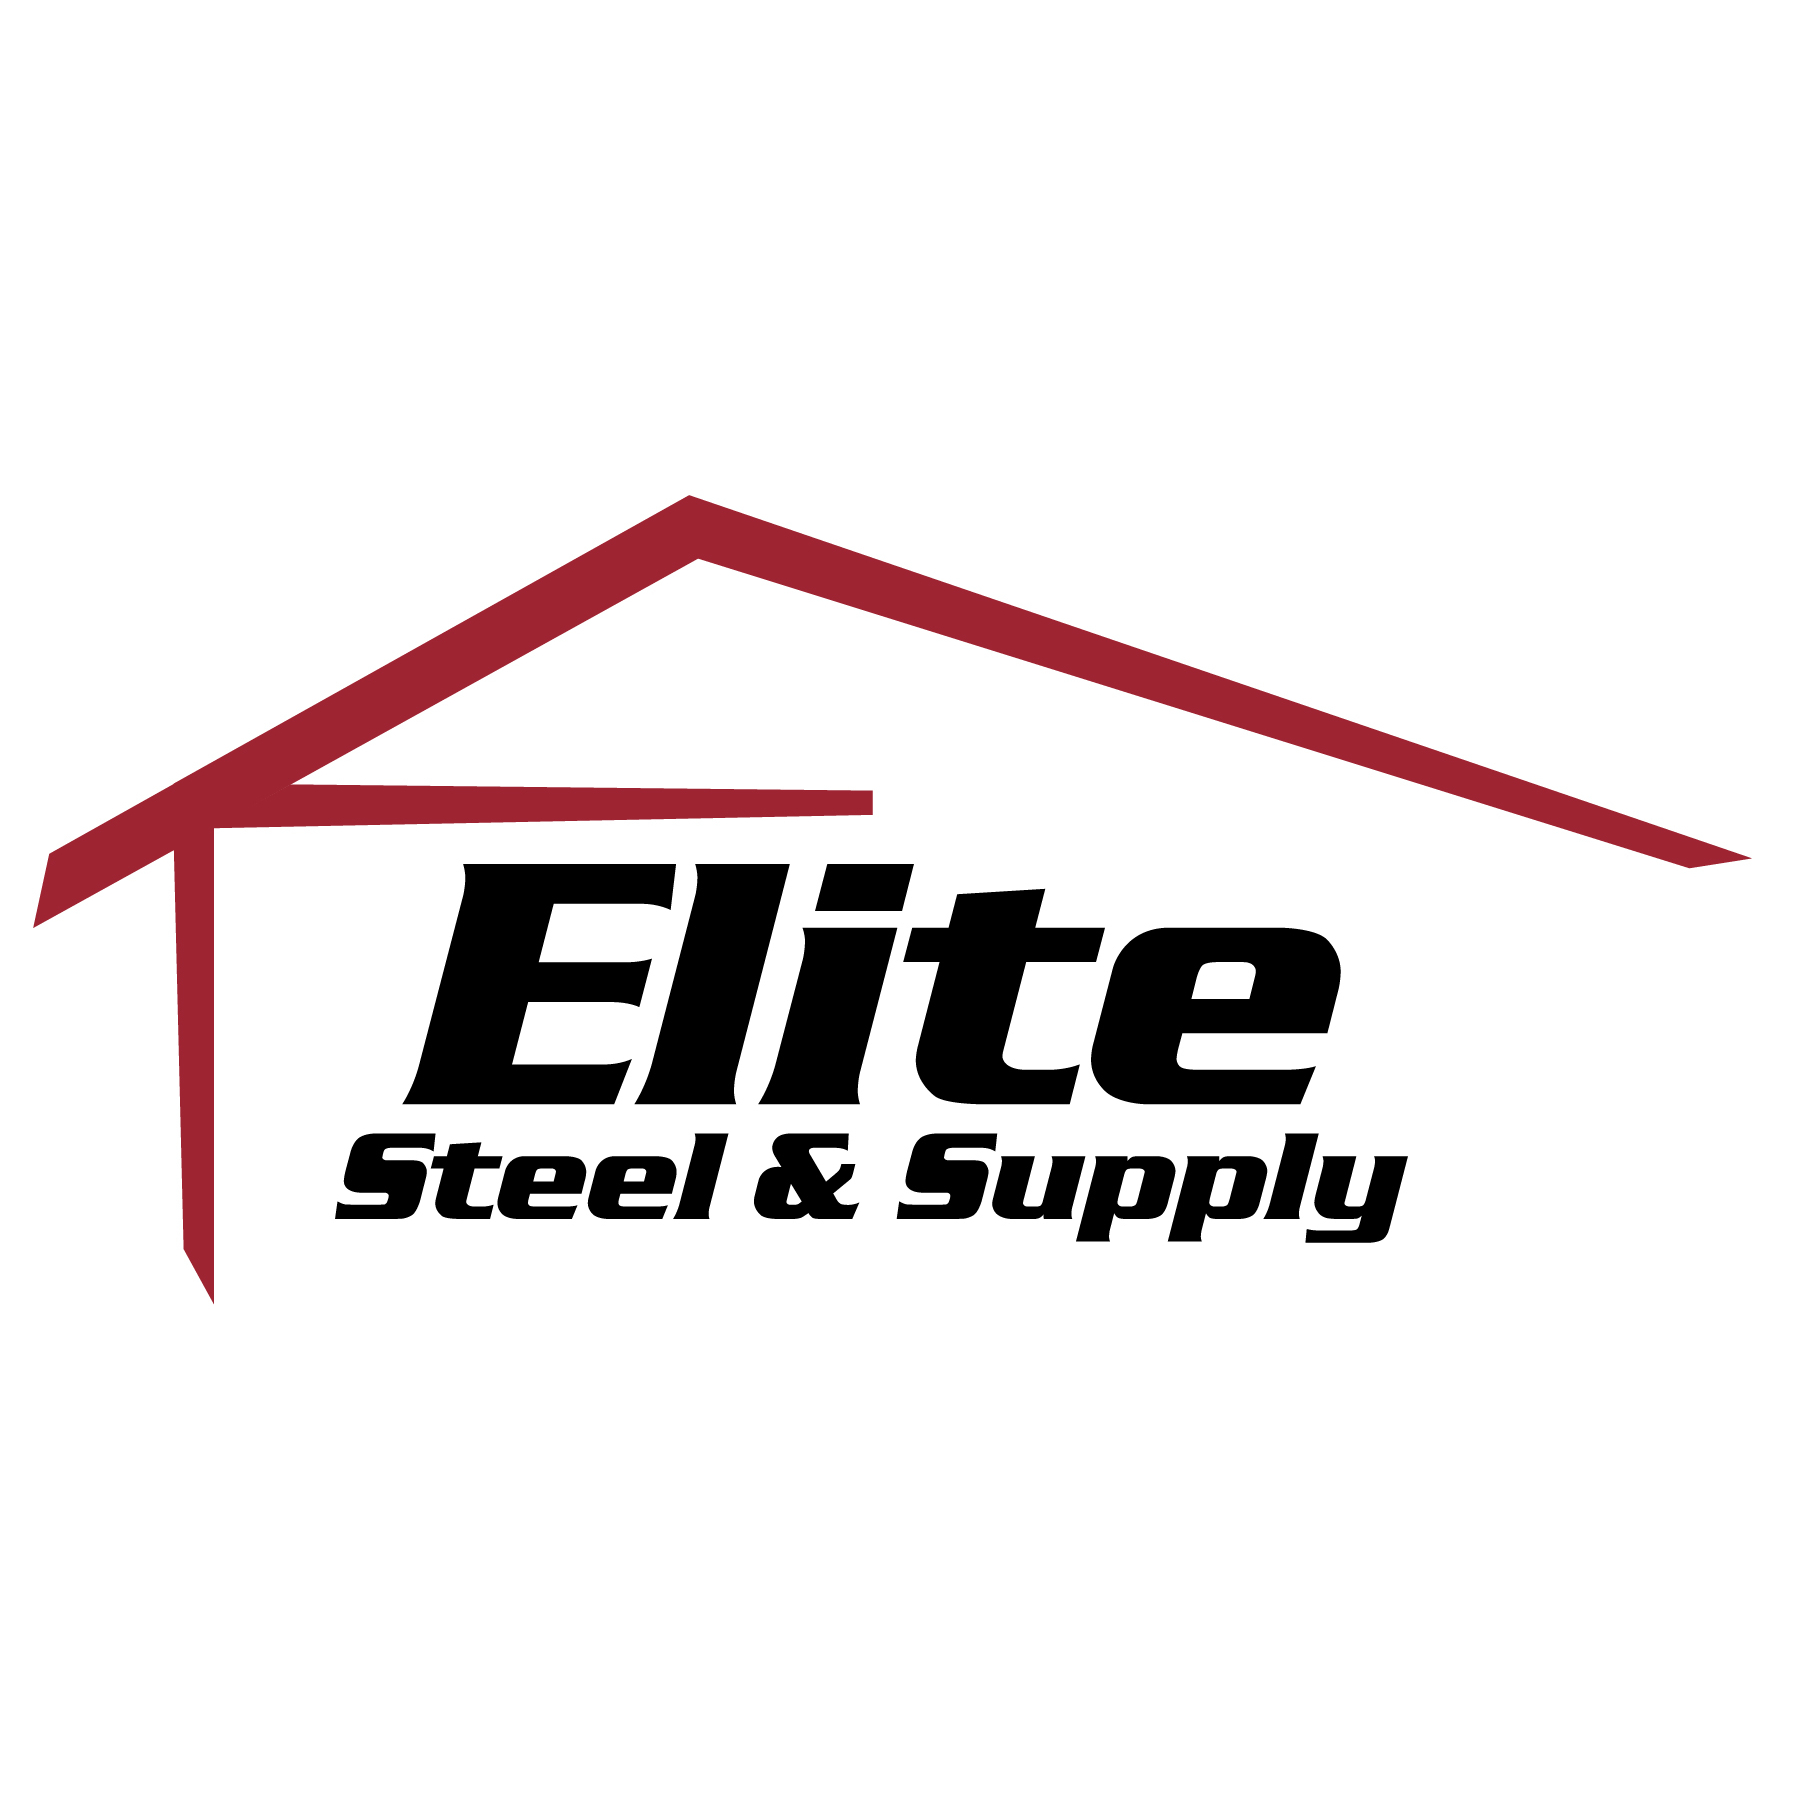 Elite Steel & Supply - Temple, TX 76501 - (254)773-4300   ShowMeLocal.com